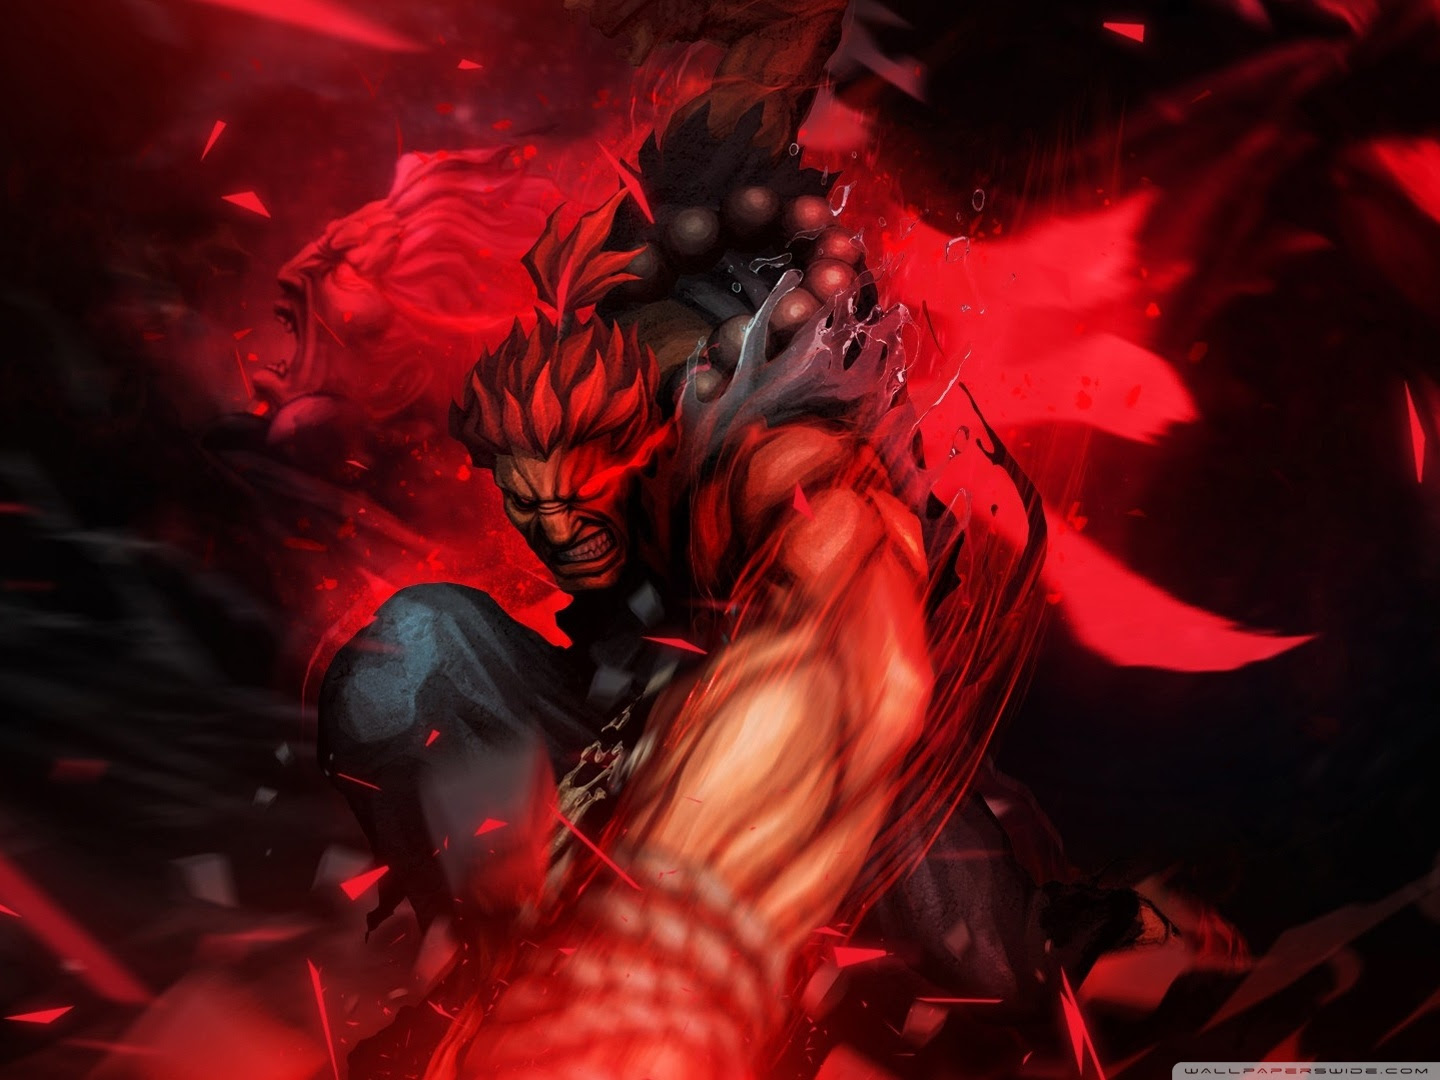 Street Fighter X Tekken Street Fighter Wallpaper 38492012 Fanpop